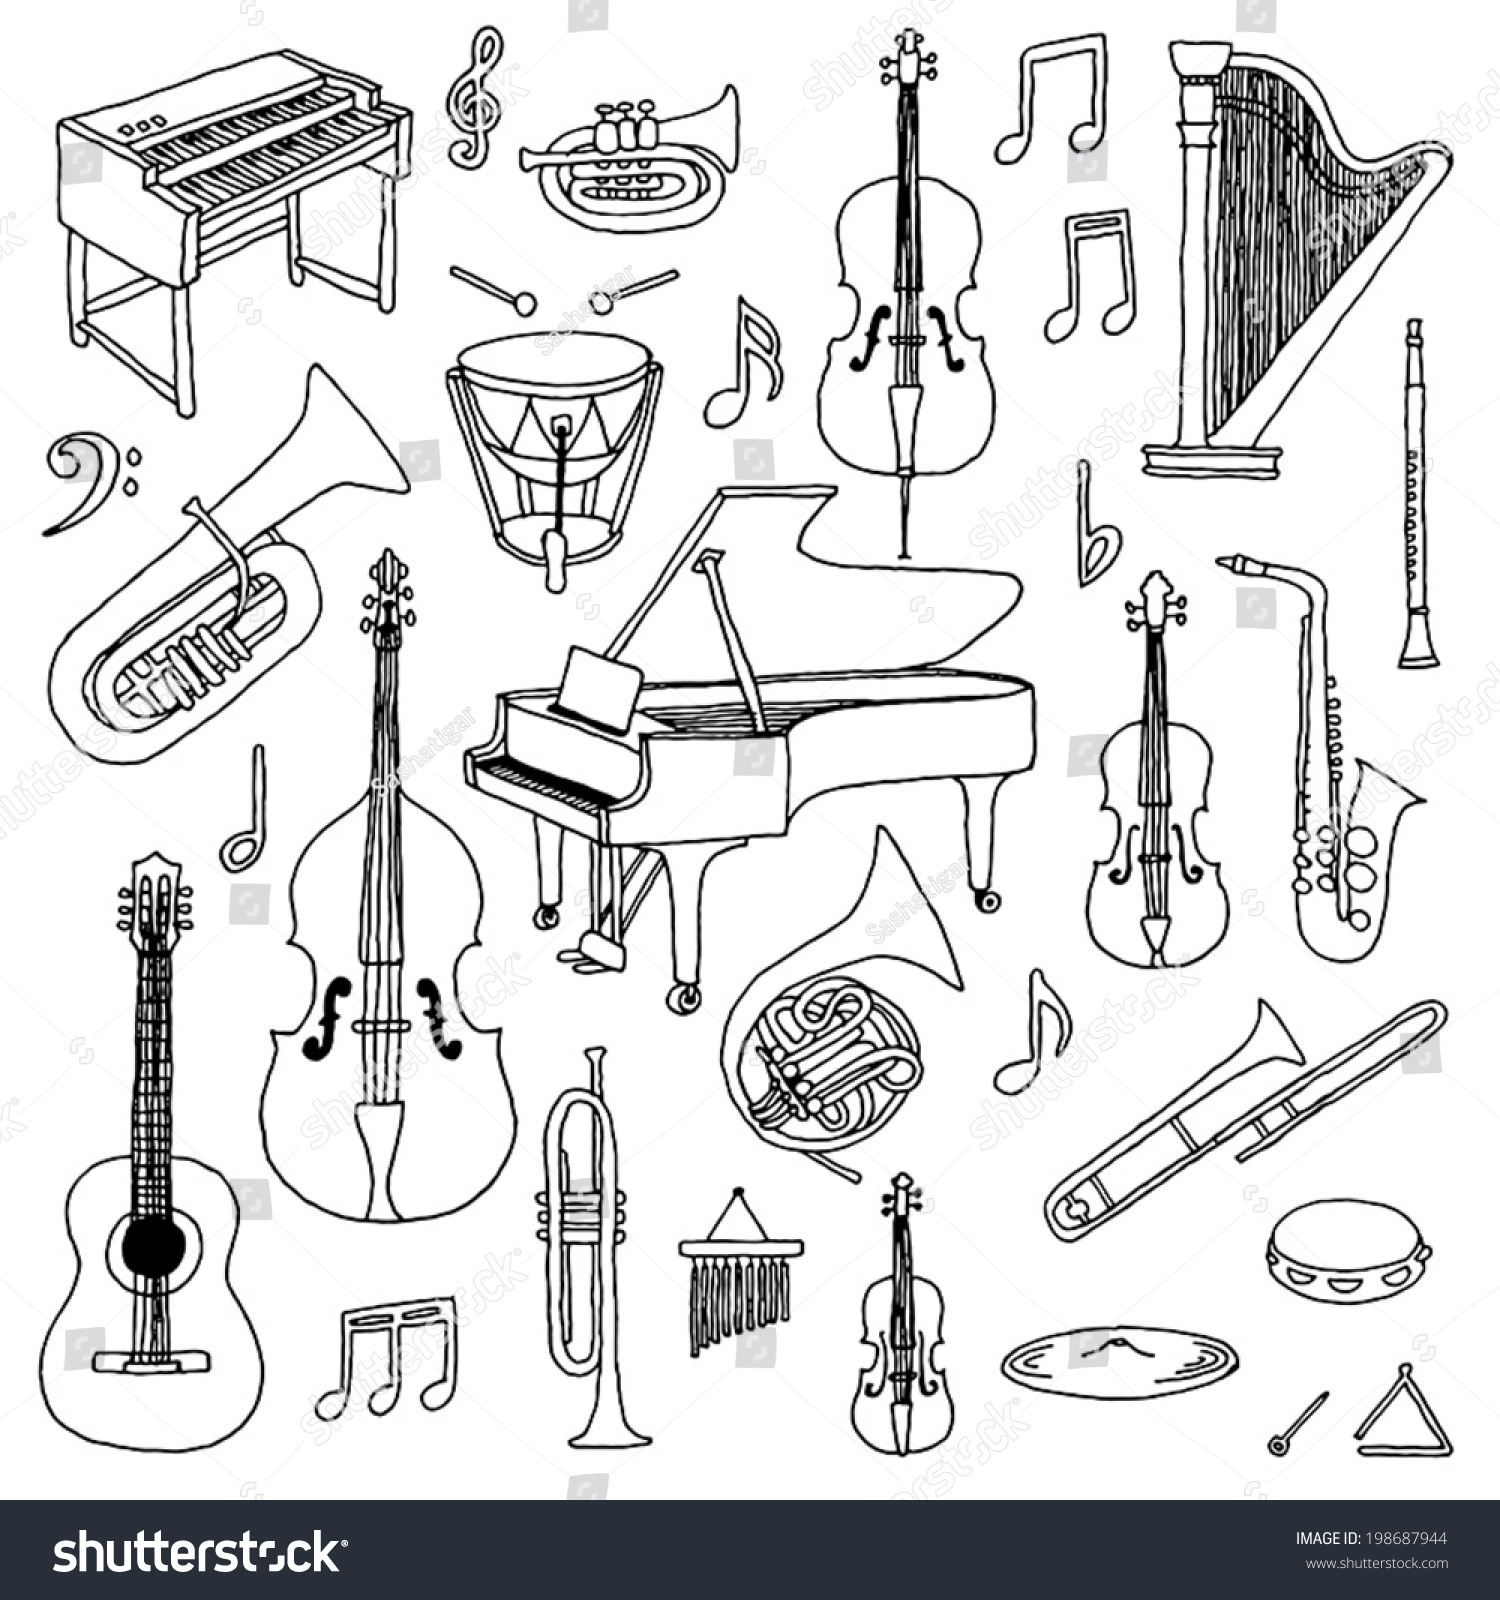 Hand Drawn Doodle Musical Instruments Classical Stock Vector